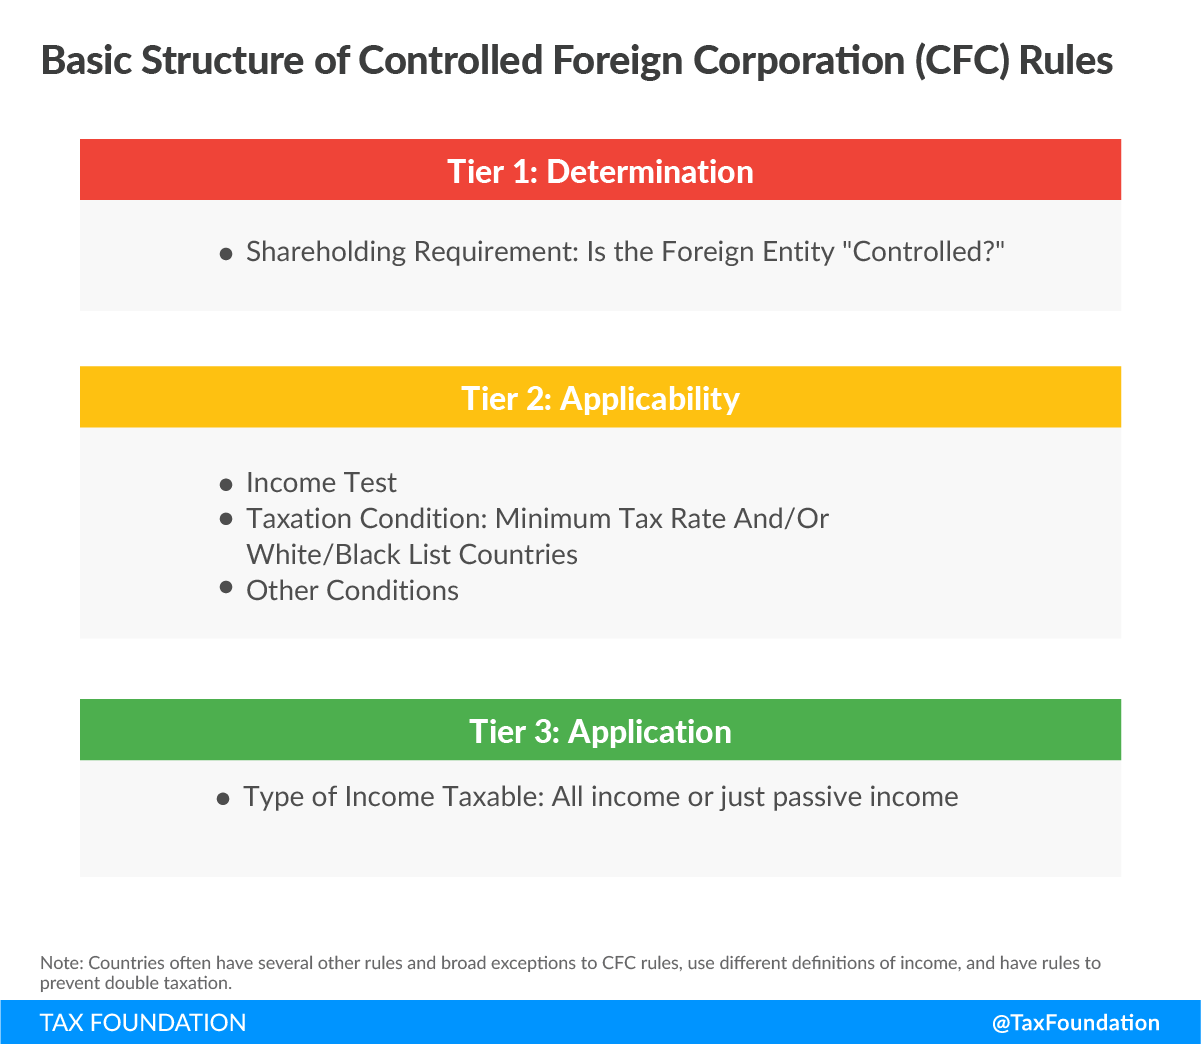 Basic Structure of Controlled Foreign Corporation (CFC) Rules